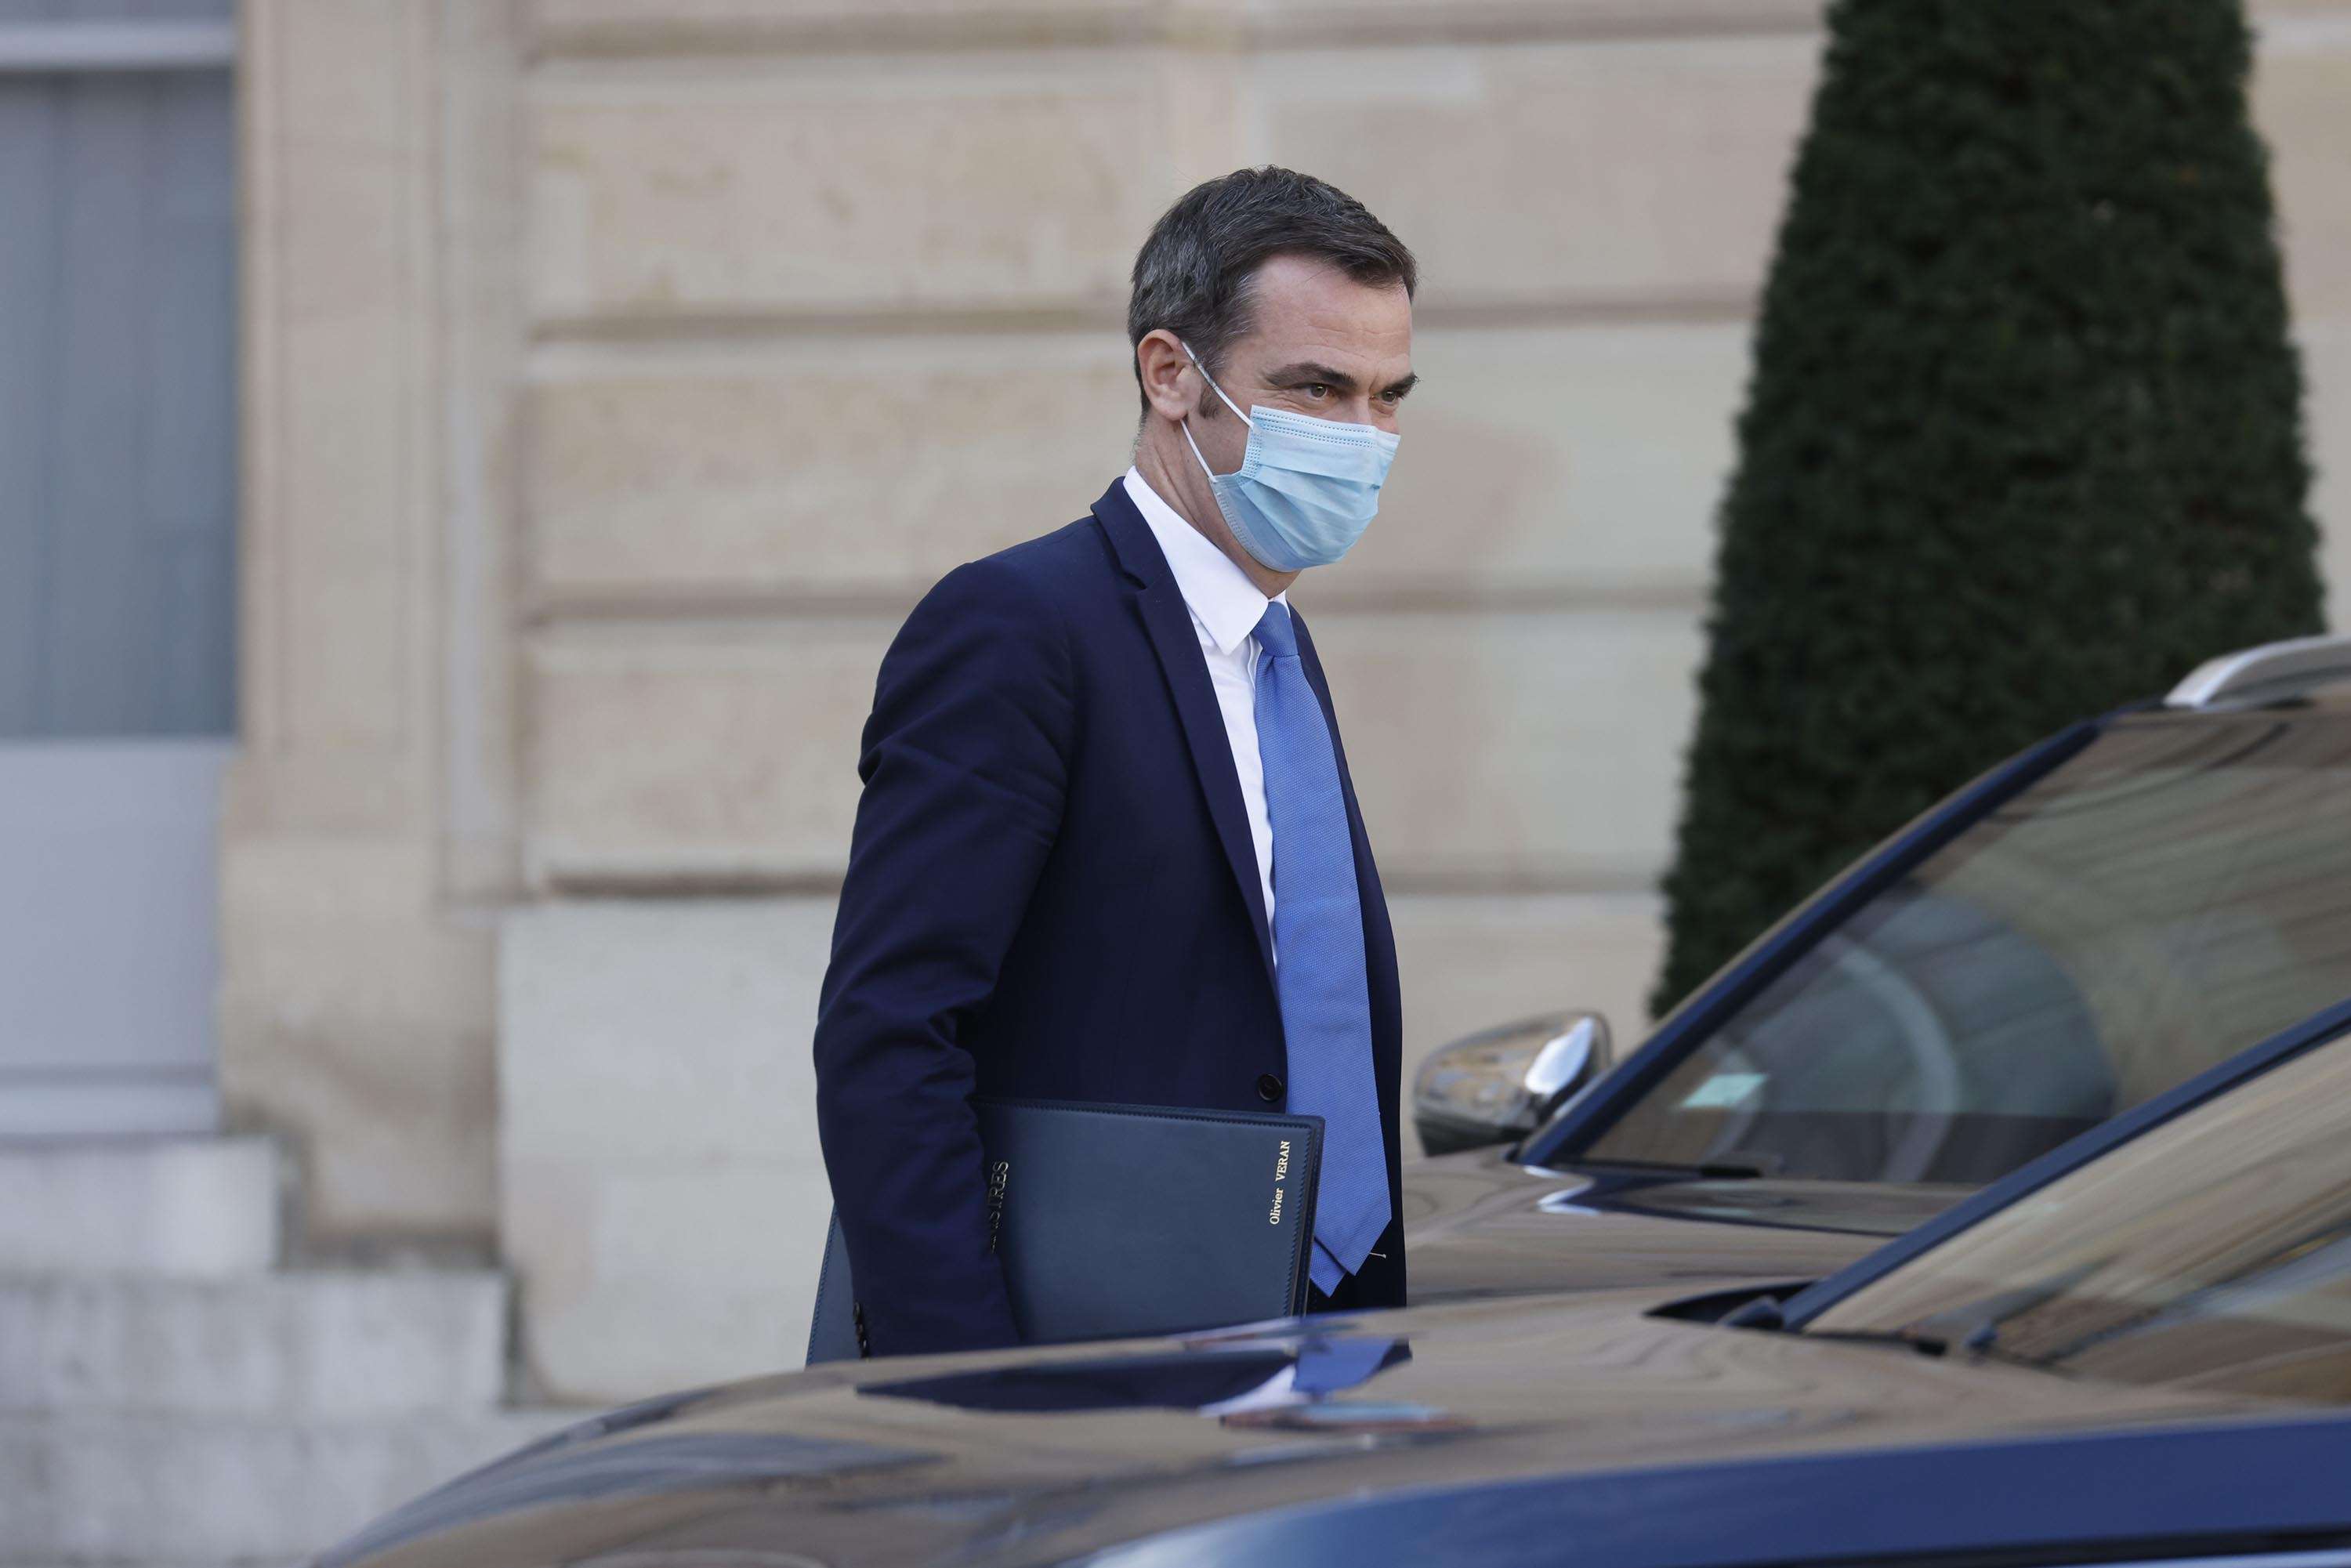 French Health Minister Olivier Veran is pictured leaving a weekly cabinet meeting at the Elysee Palace in Paris, on October 14.